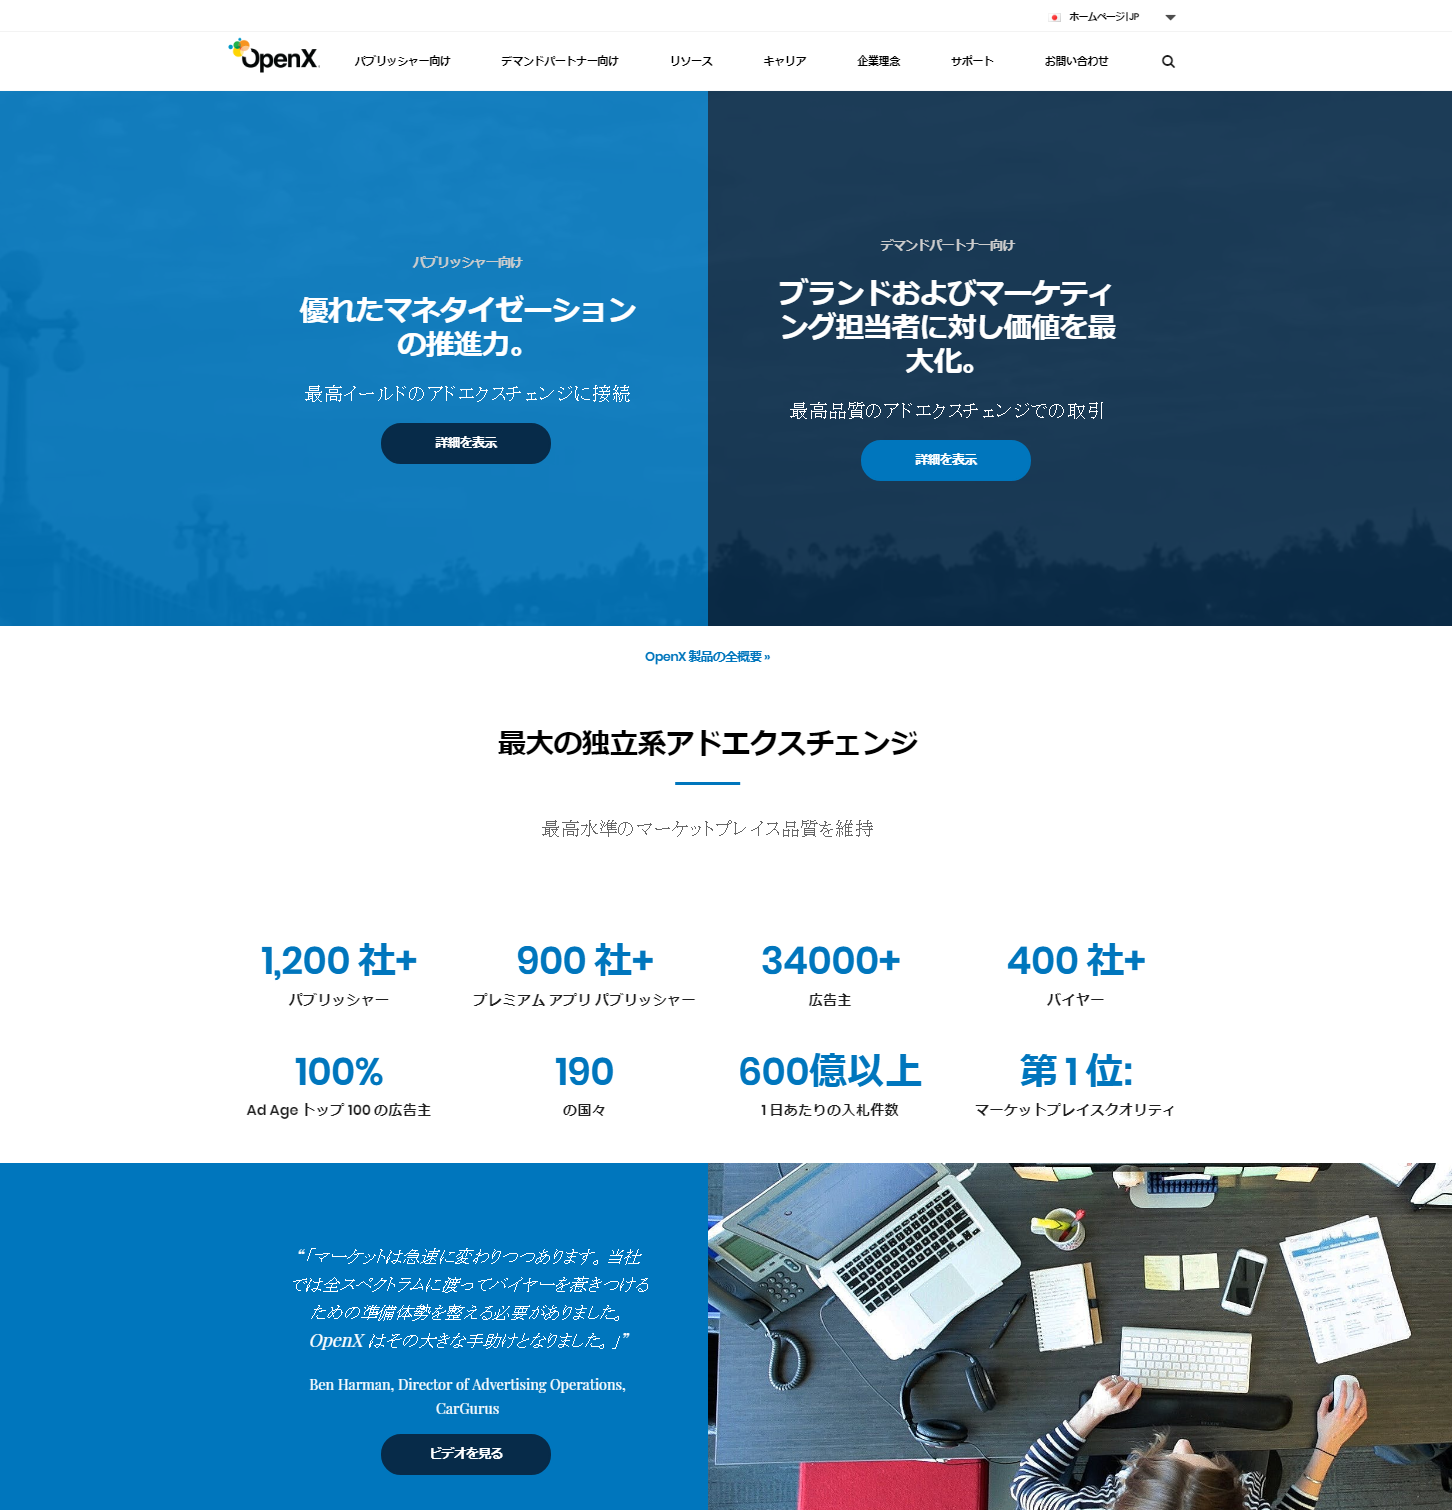 OpenX japanese website